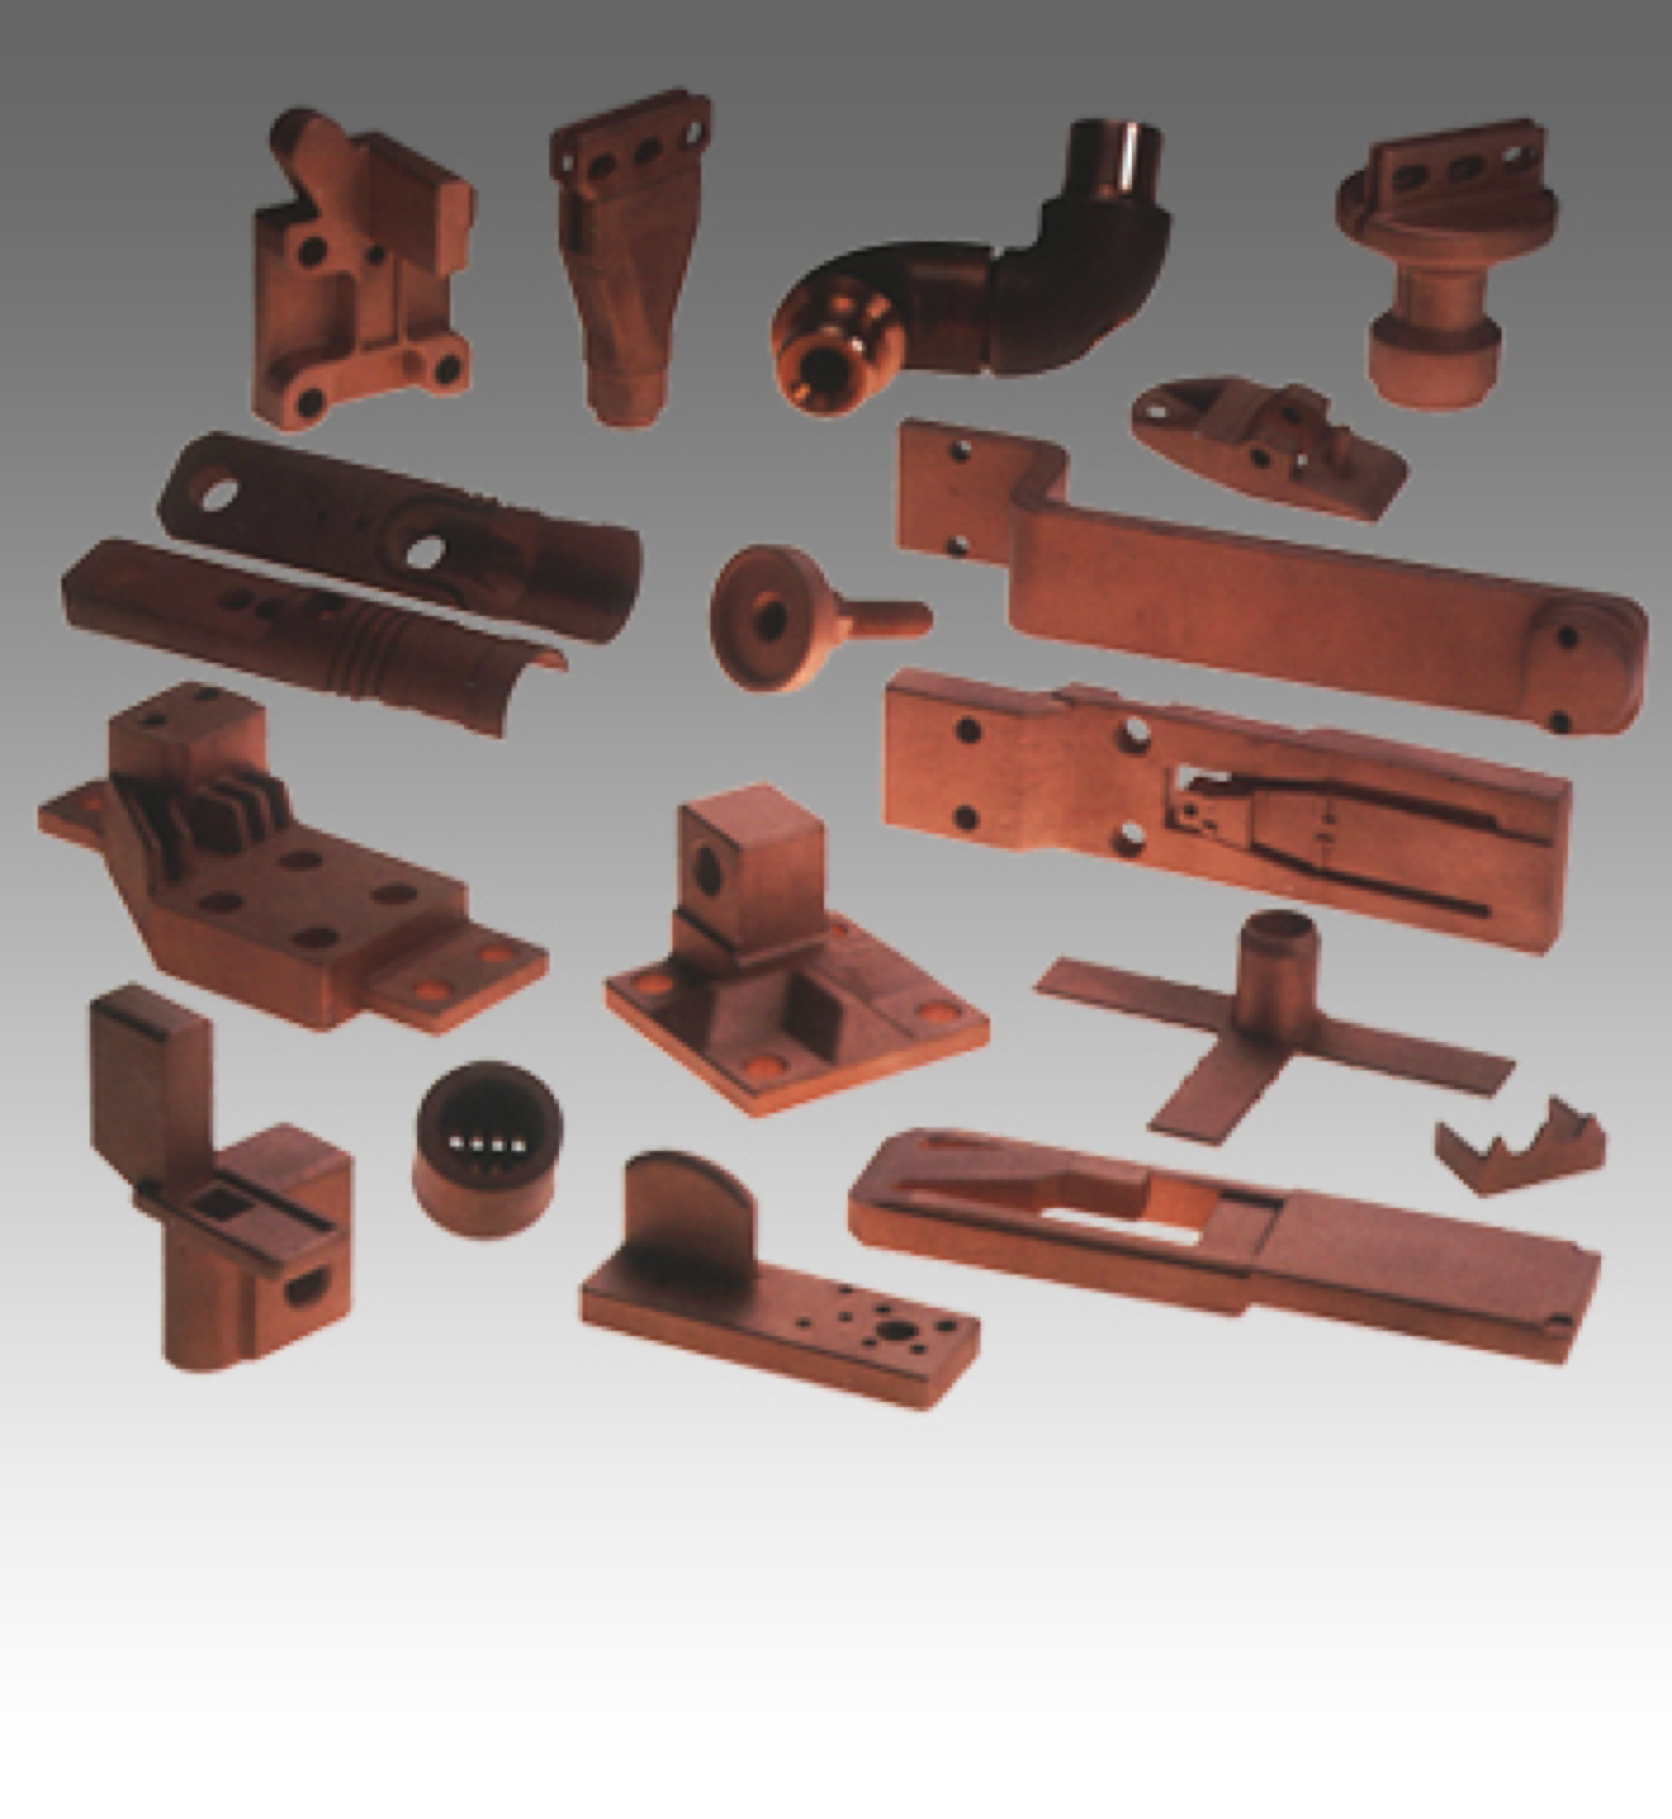 metal castings showcase